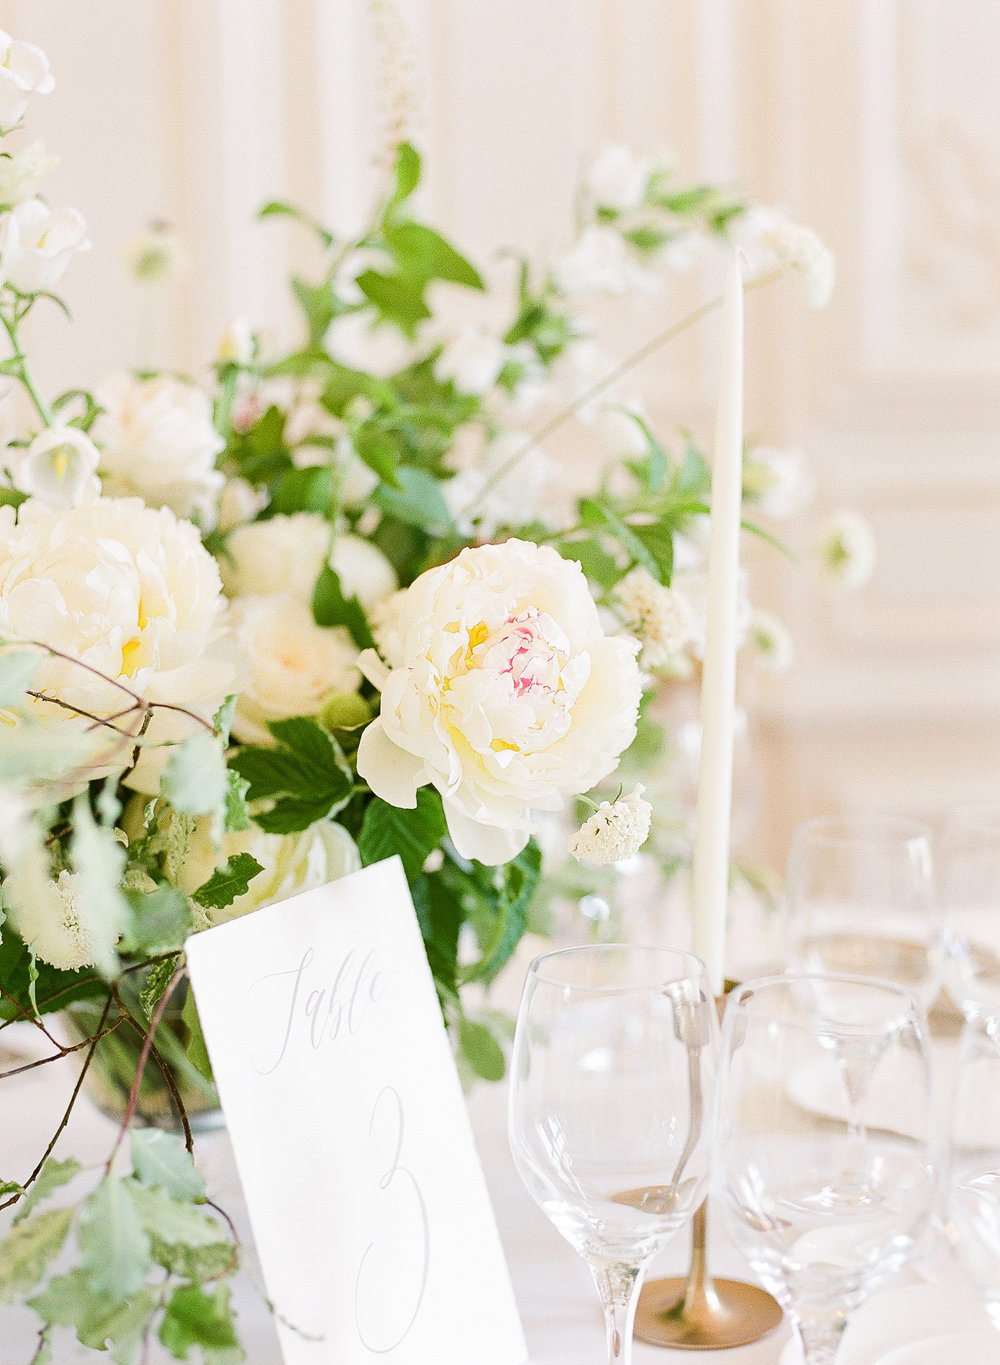 fine-art-wedding-florist-paris-france-wedding-white-and-green-flowers.jpg